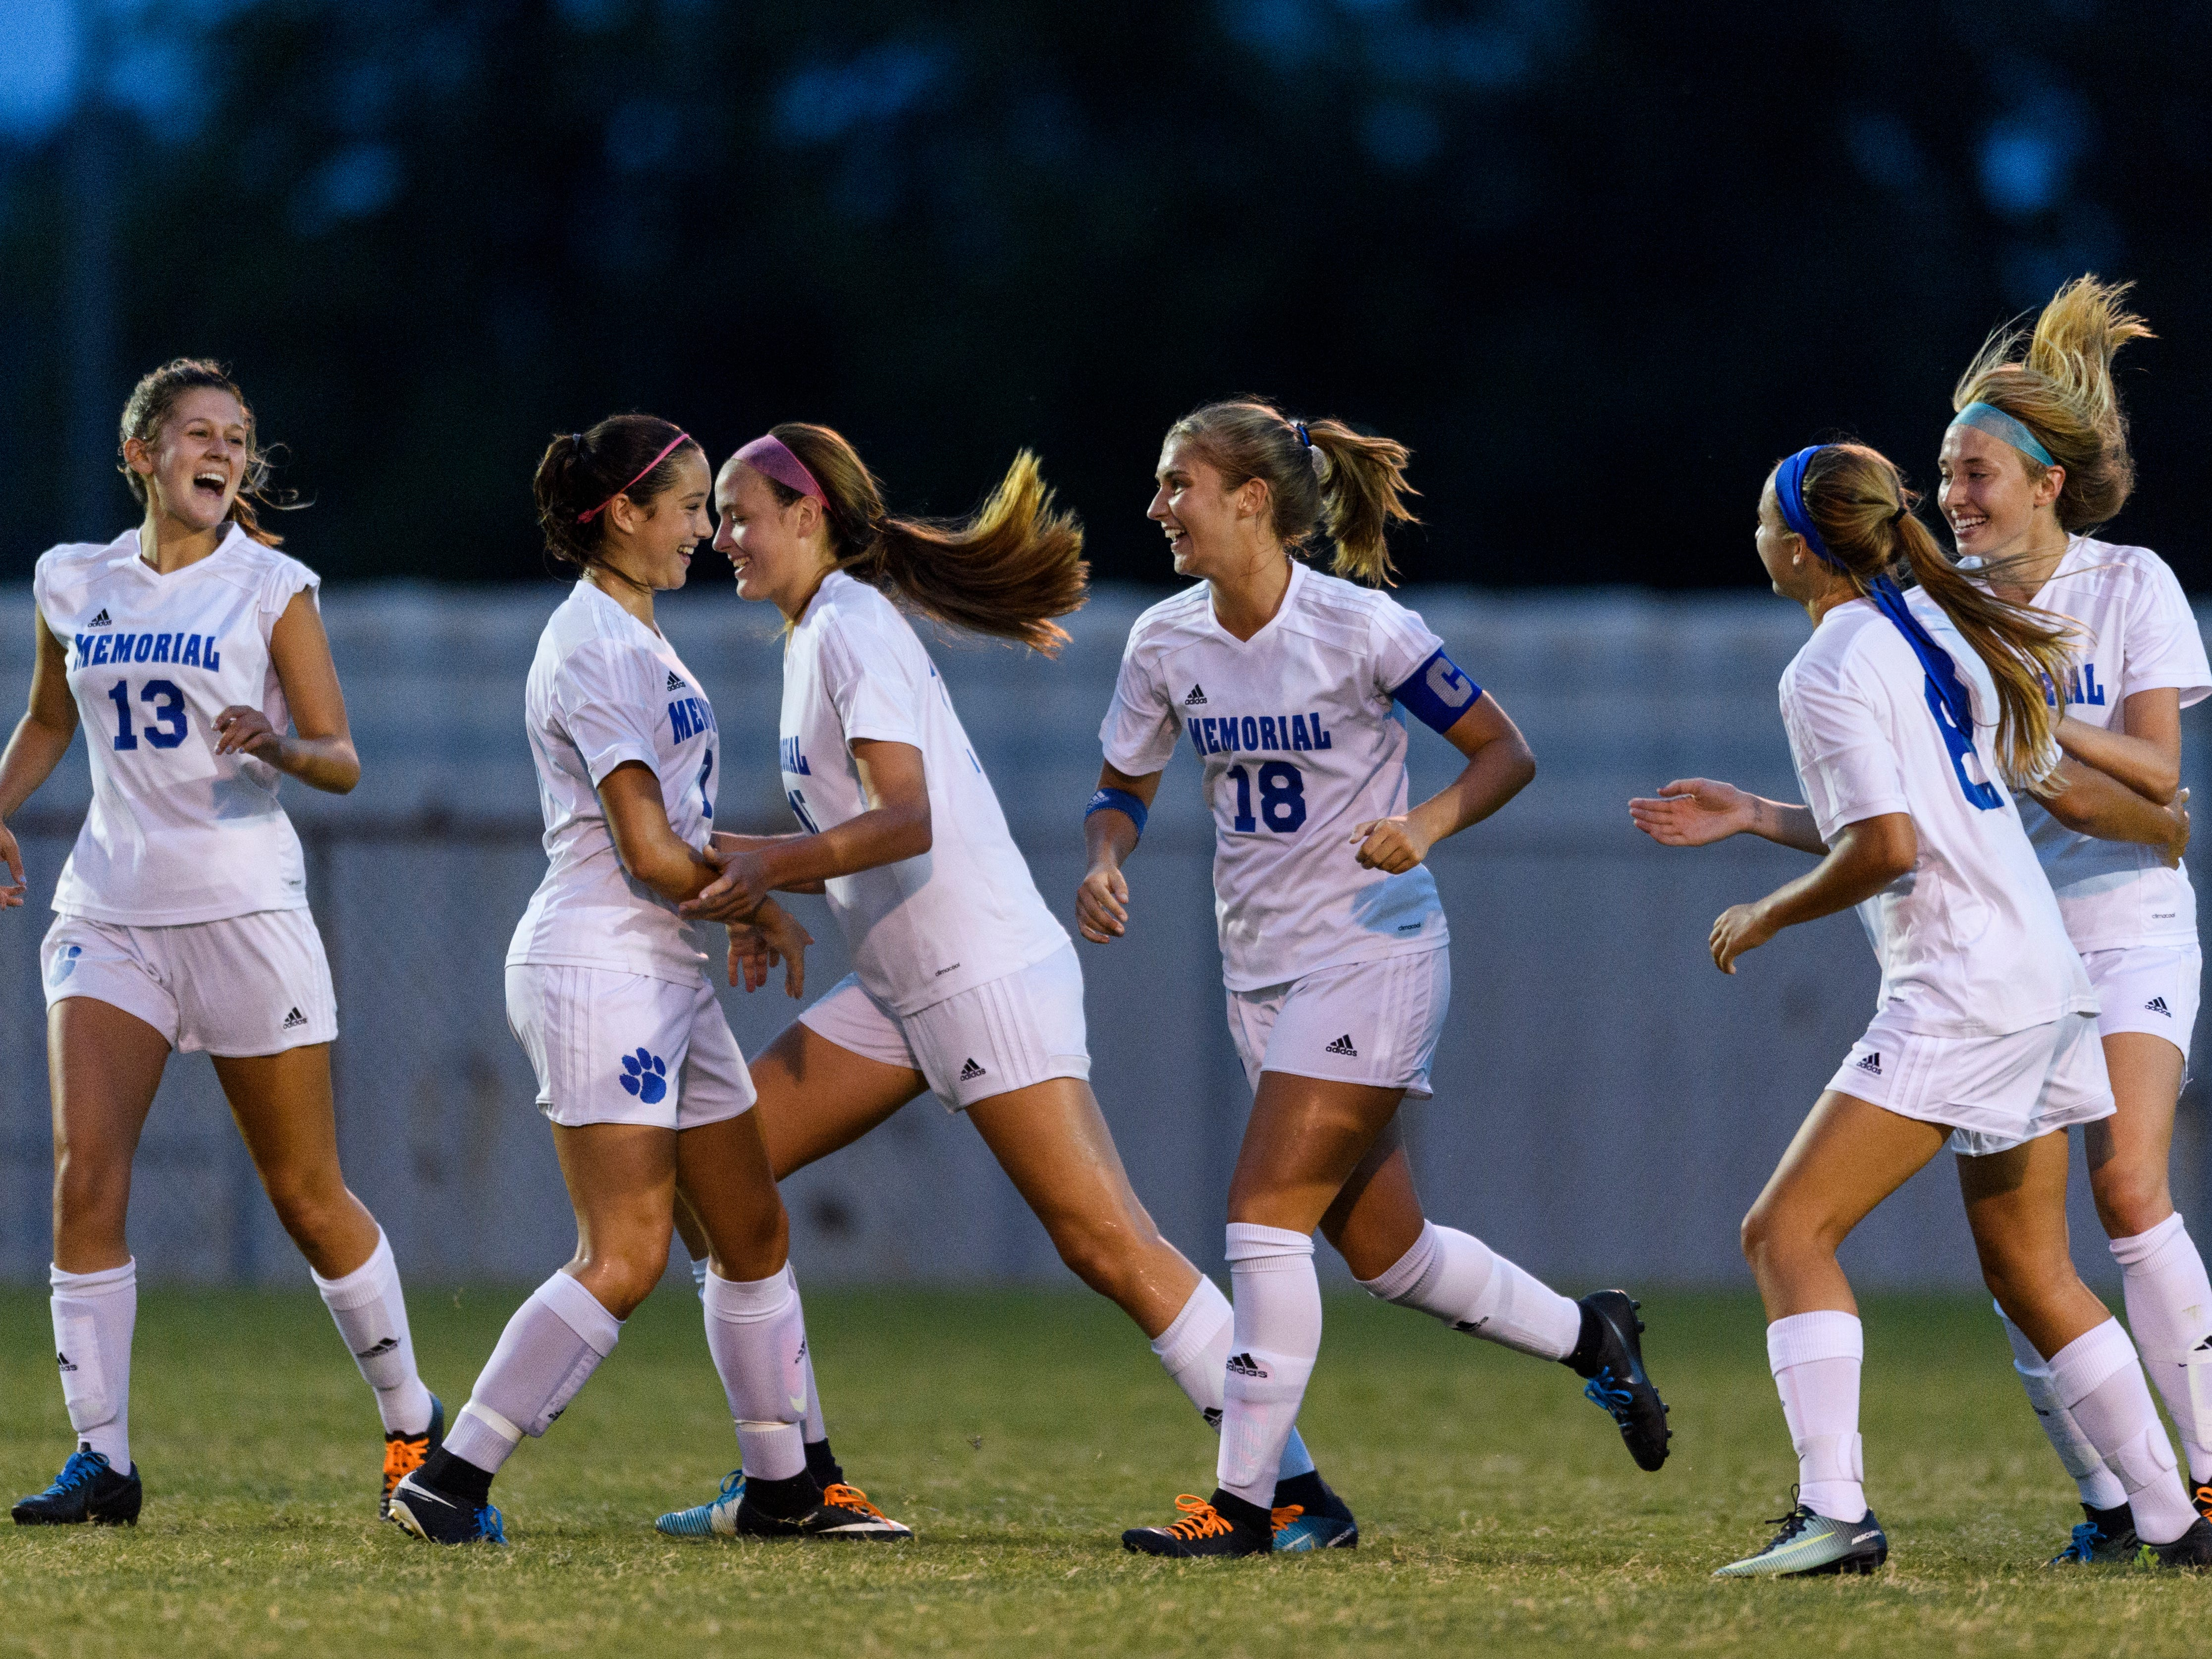 The Memorial Tigers cheer together after Memorial's Annah Hopkins (18) scored a goal on the Mater Dei Wildcats Memorial Tigers at the EVSC Soccer Fields in Evansville, Ind., Monday, Aug. 20, 2018. The Tigers defeated the Wildcats 4-0.